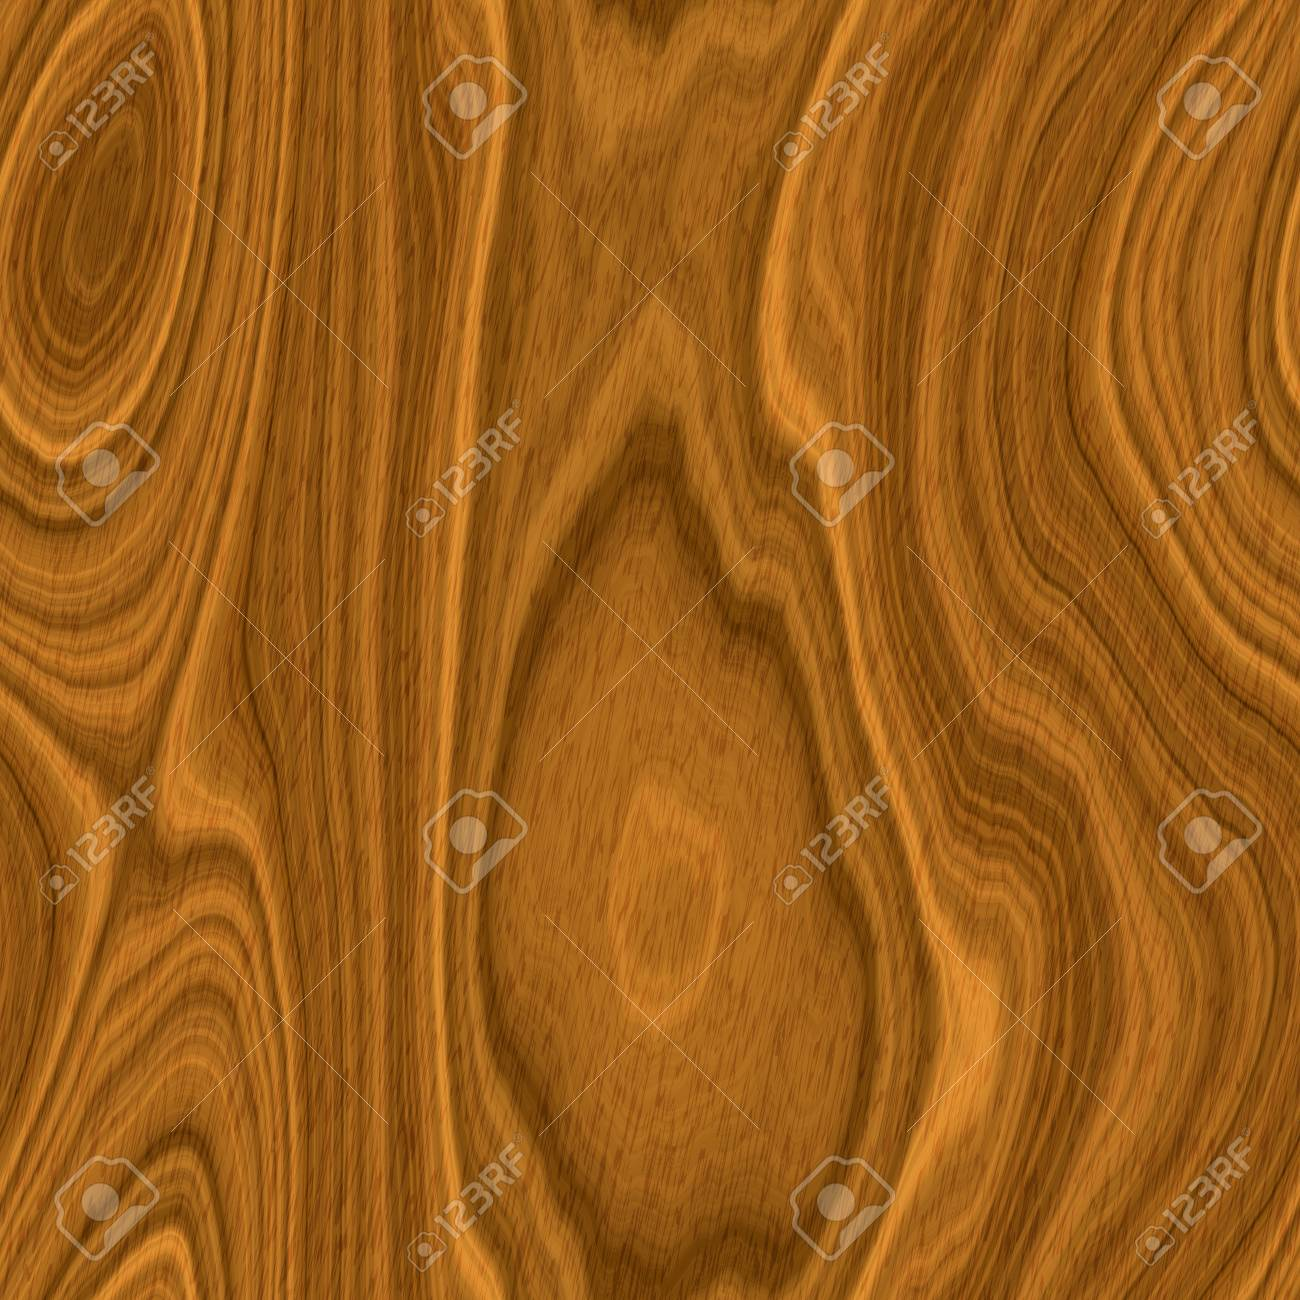 Wood Veneer Pattern Abstract Nature Wall Interior Home